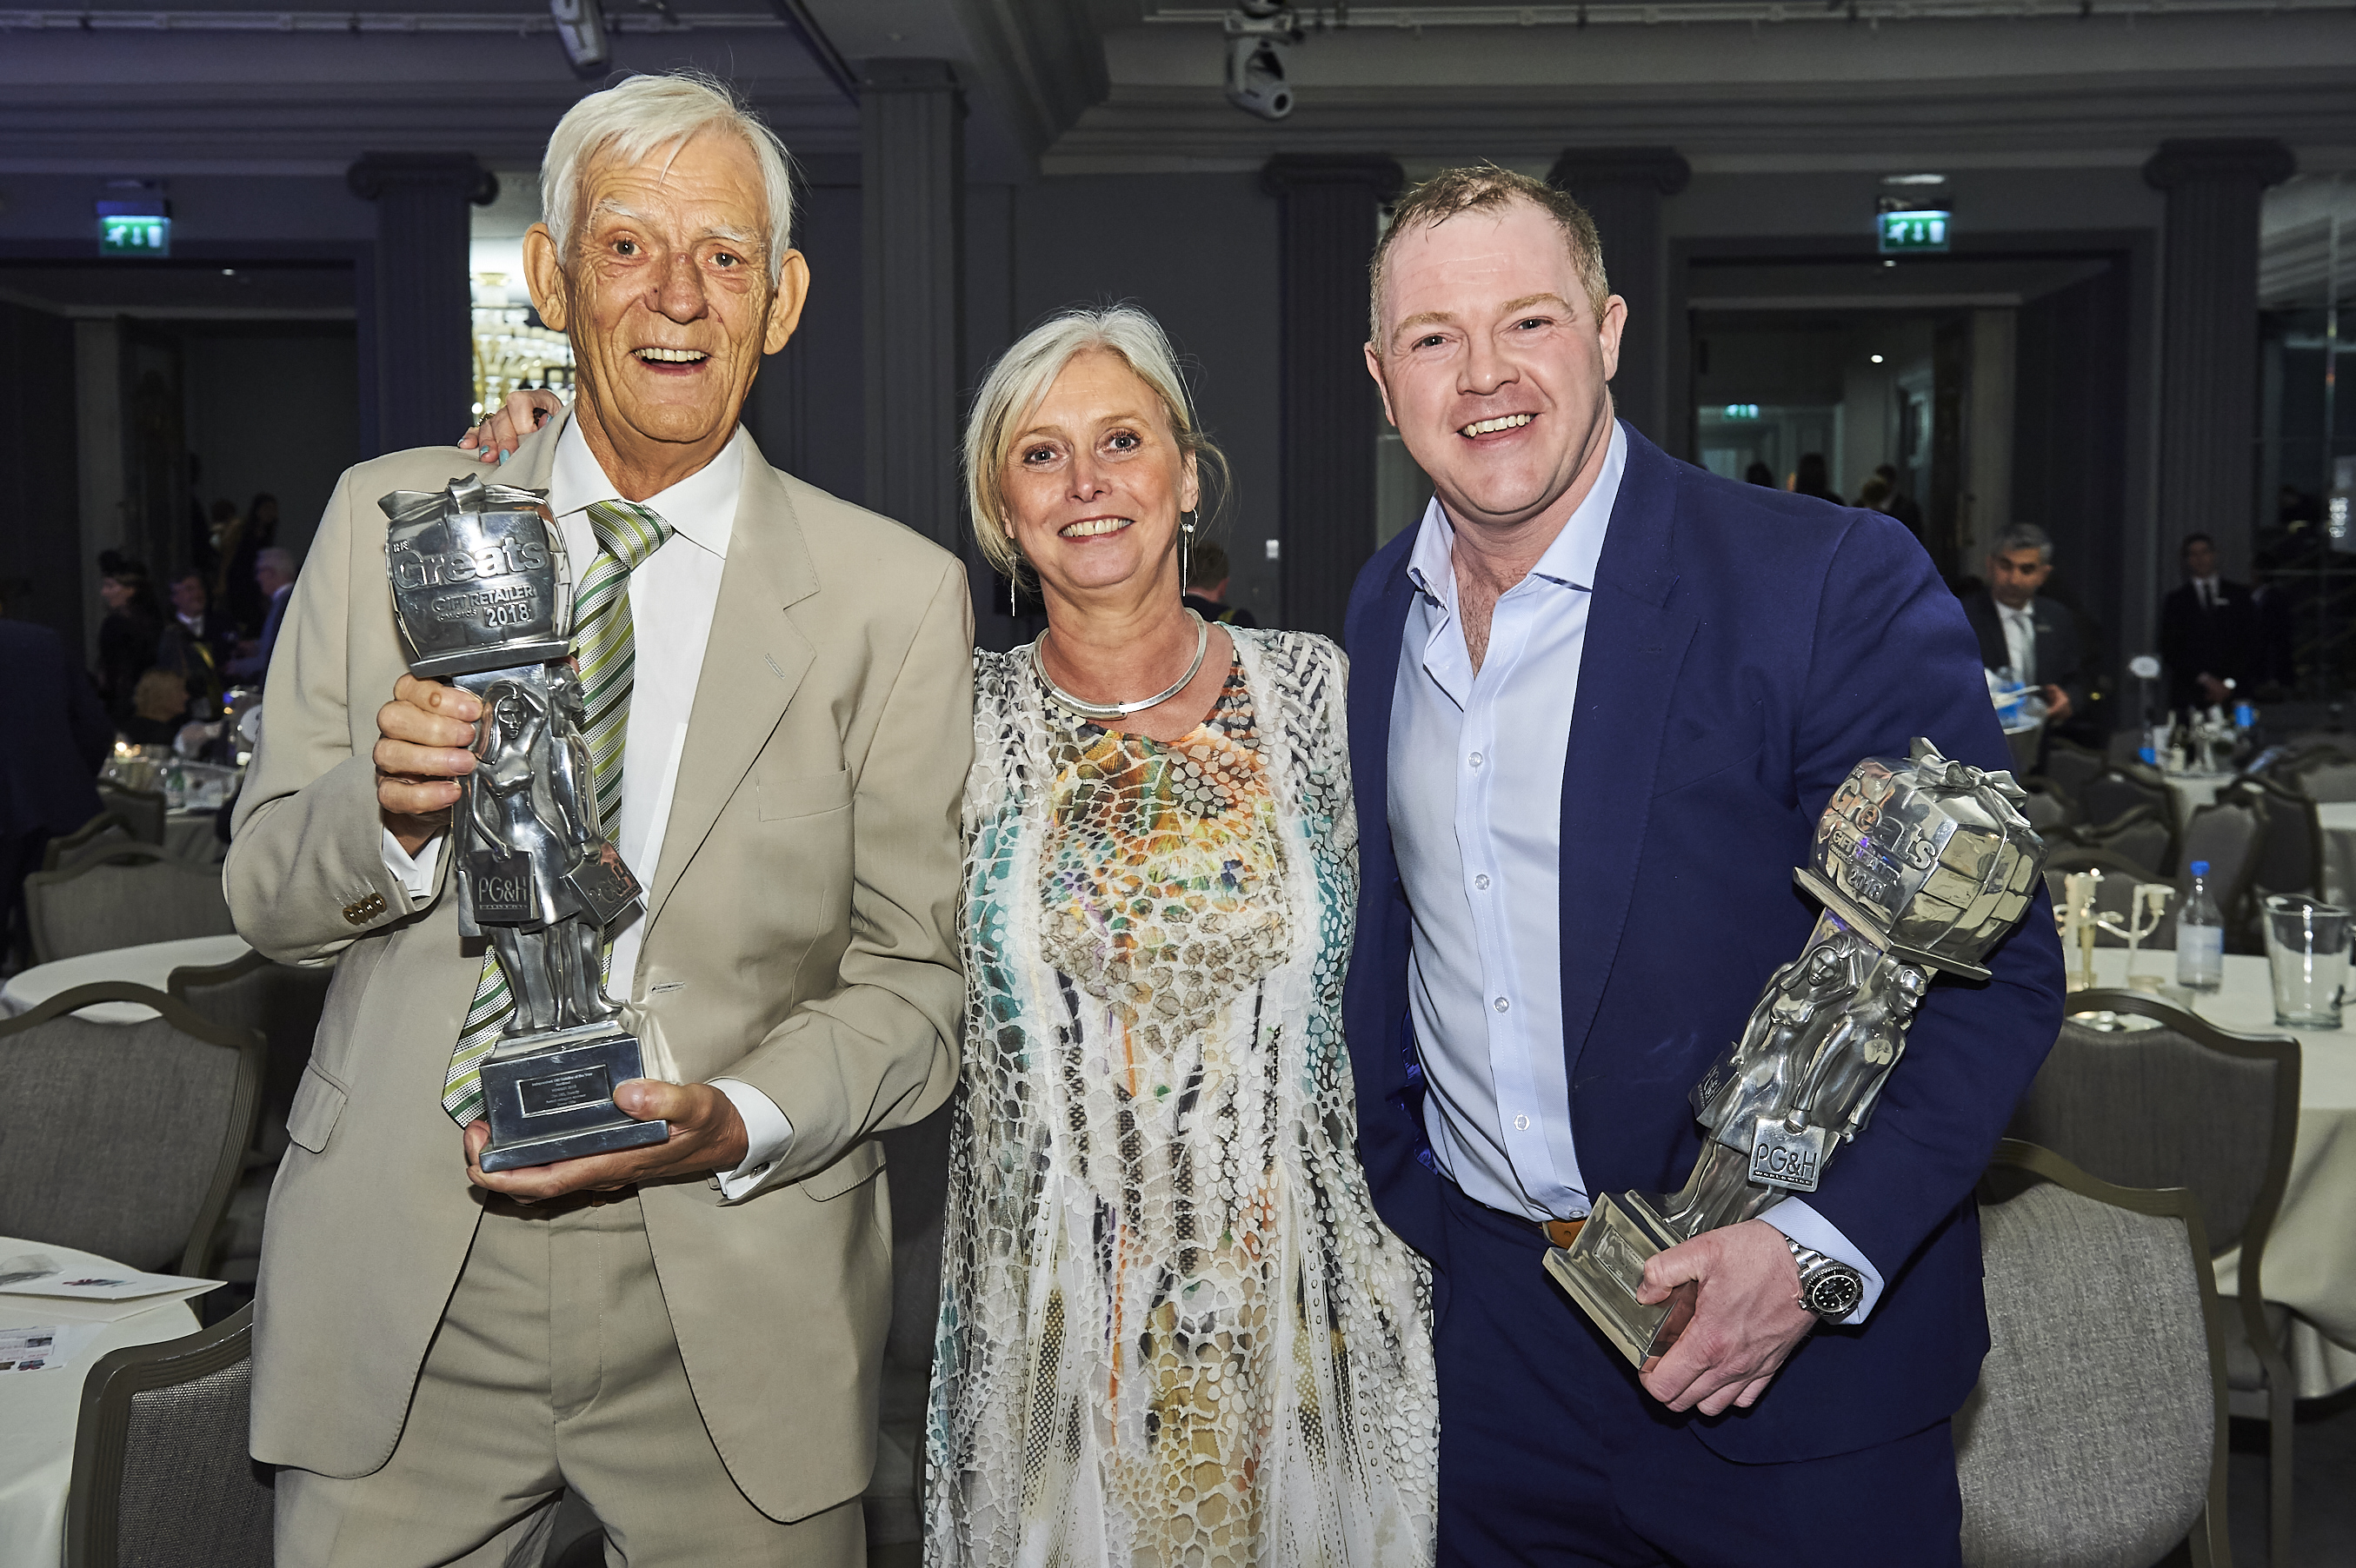 Above: David Robertson (right) with his 2018 Greats (gift retailer trophy) with fellow Scottish indies, Constance and Hamish Wemyss of The Gift in Beauly and their trophy.